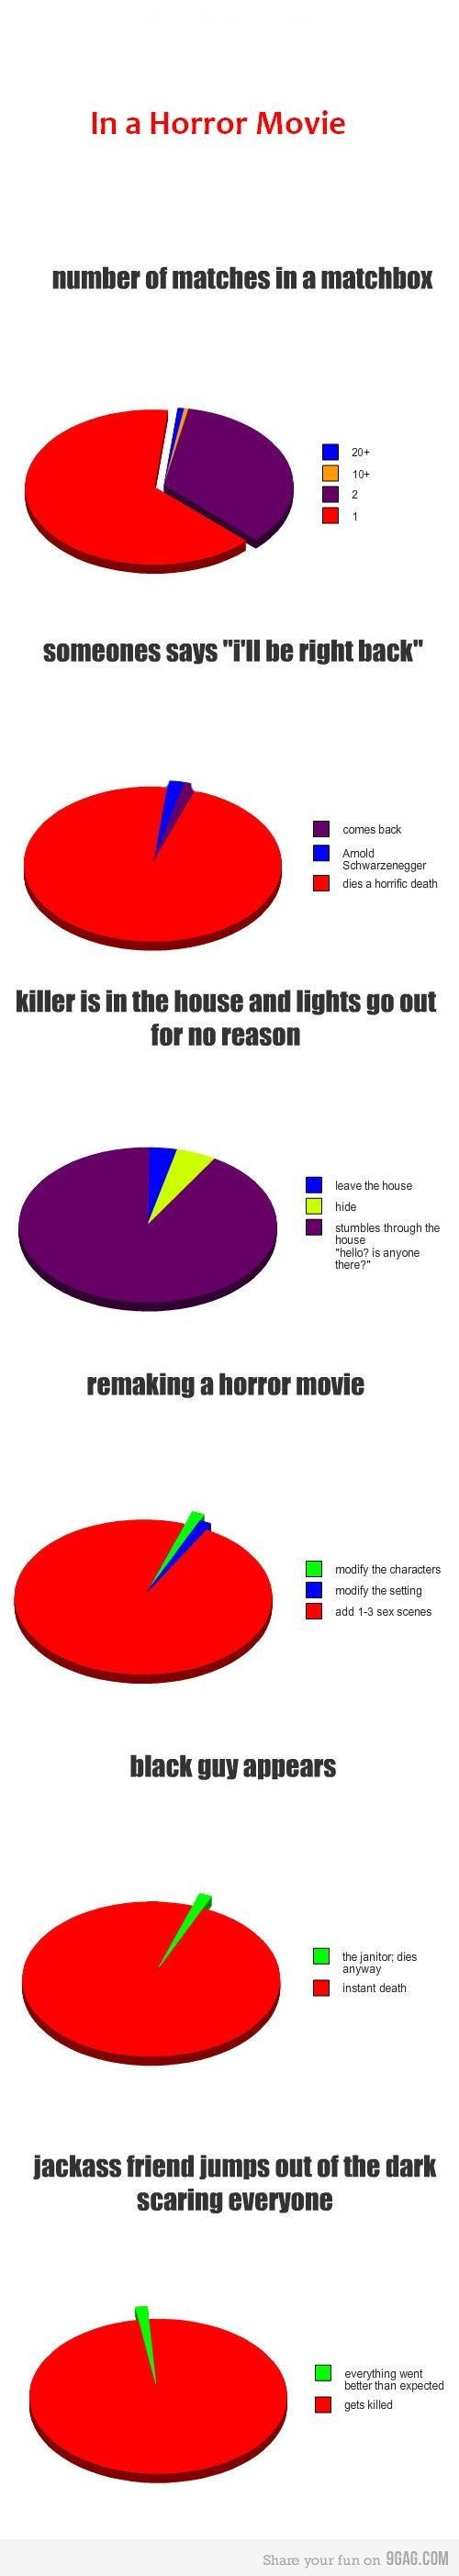 Horror movie statistics